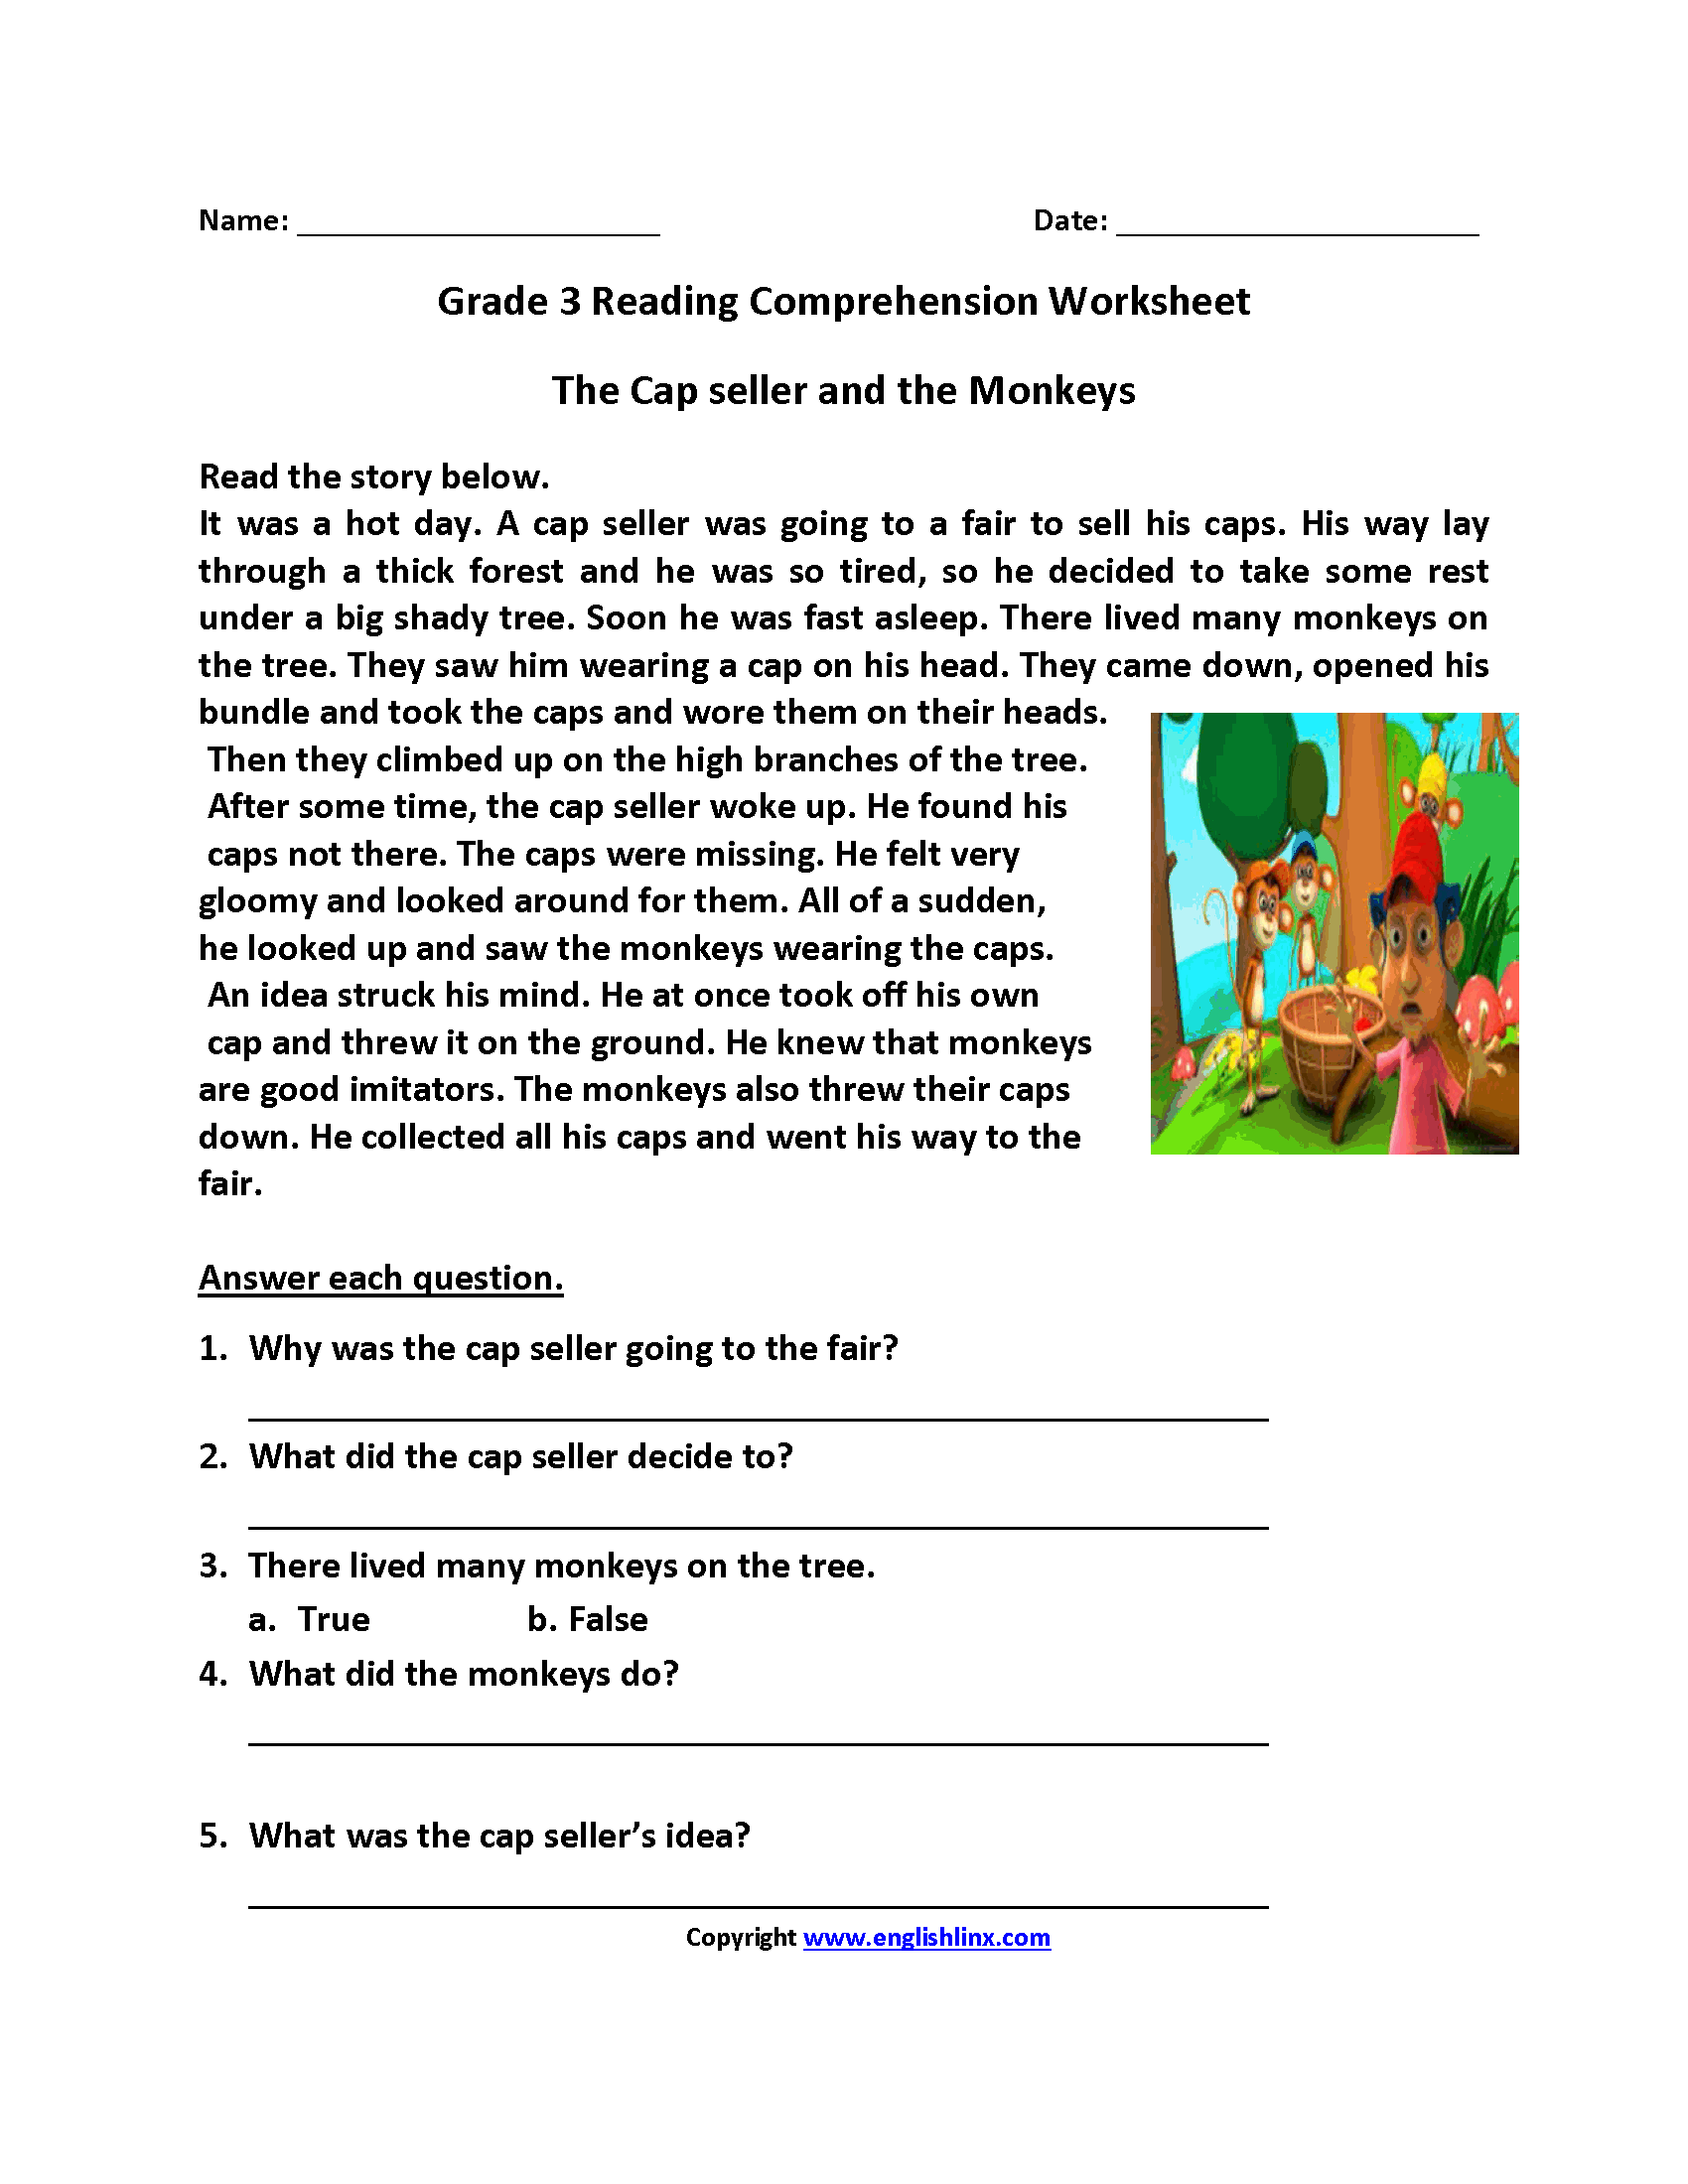 Worksheet About Monkeys